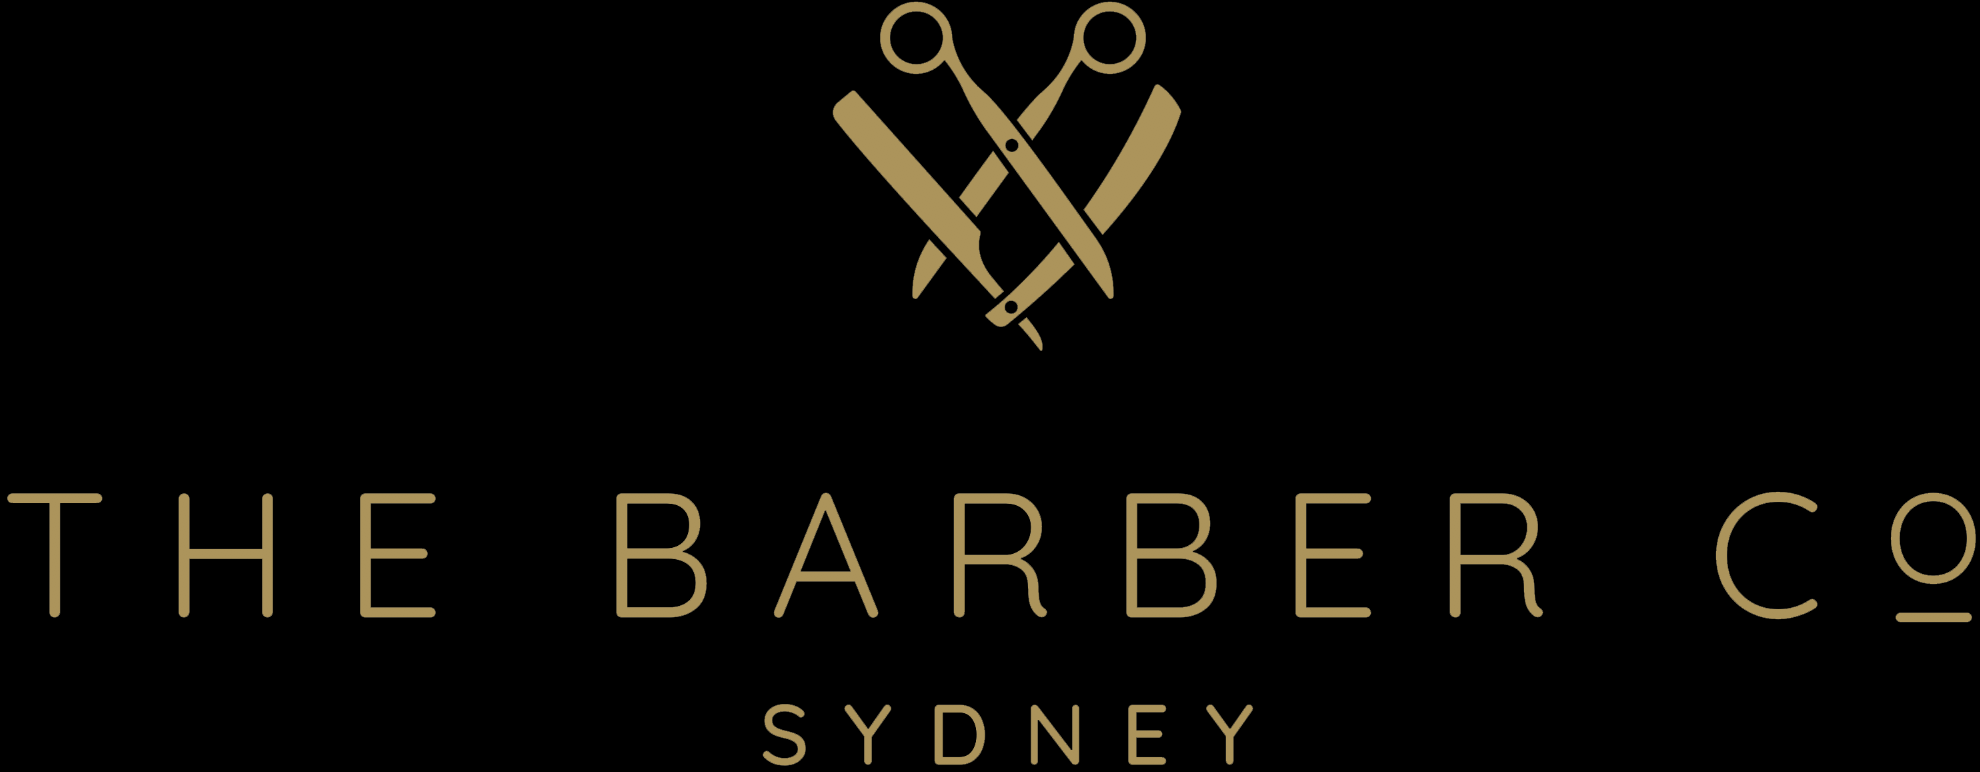 The Barber Co. Sydney